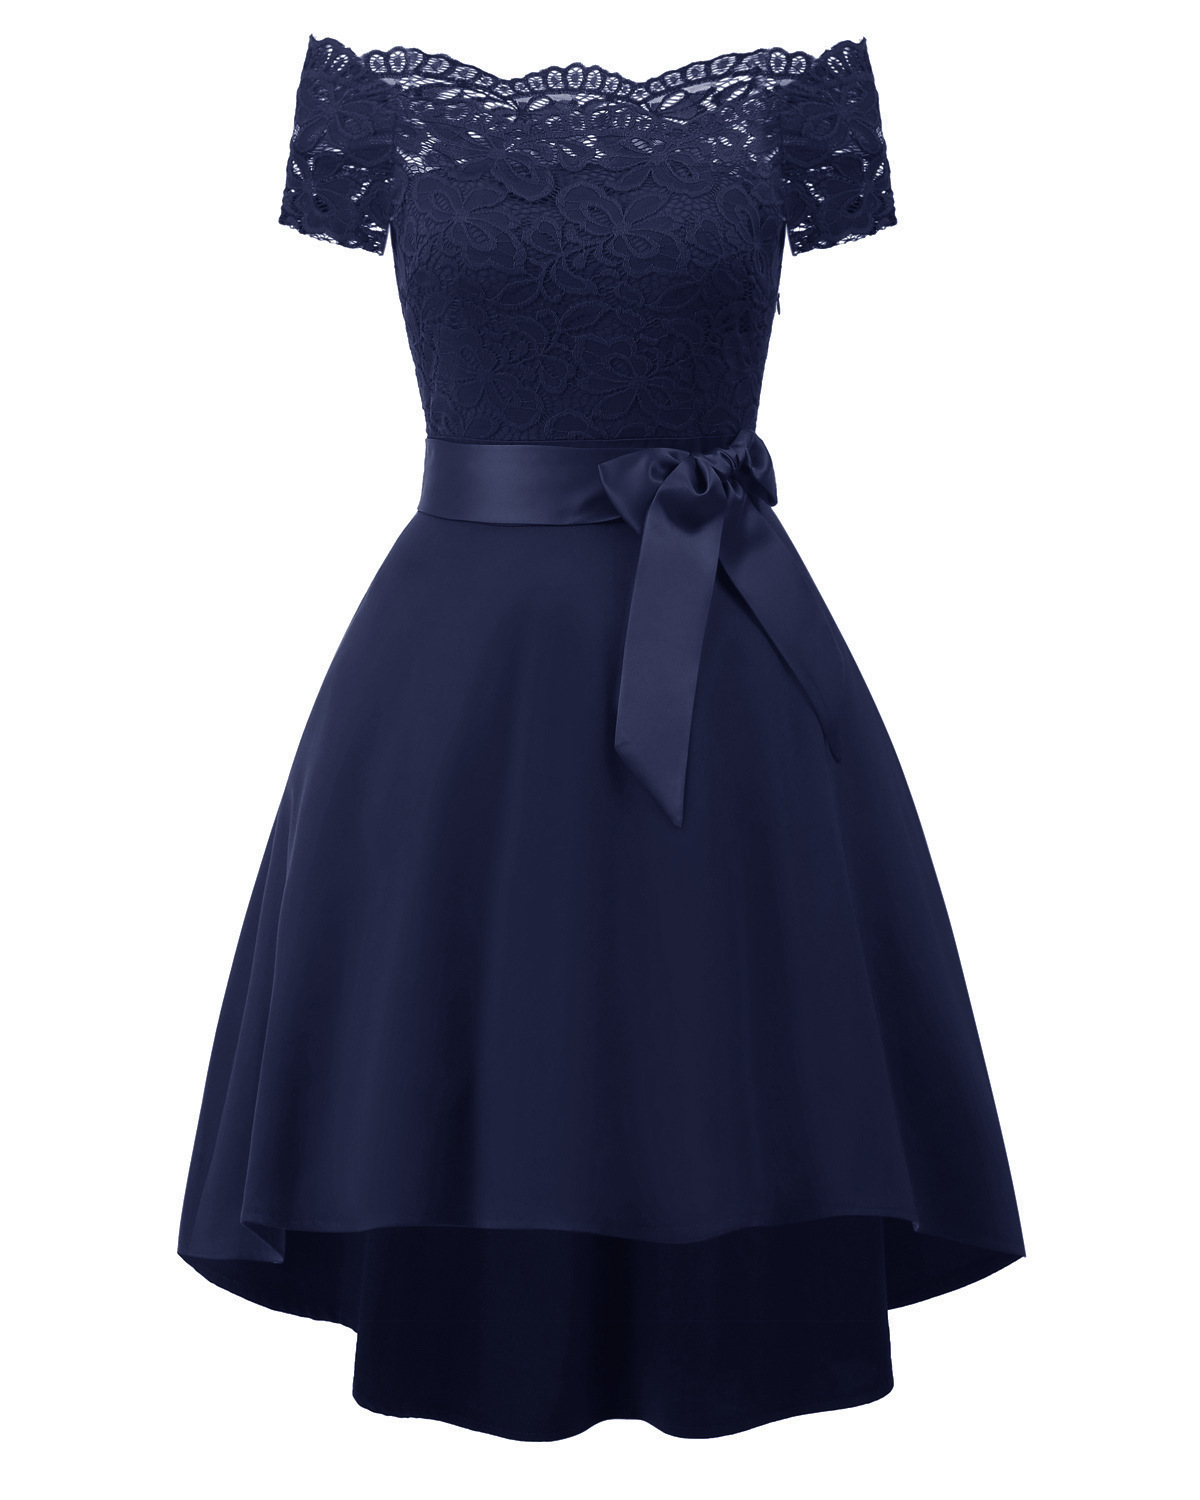 New Fashion Short Prom Dresses Navy Blue Boat Neck Pleated Robe Femme High-low Mini Formal Party Dress Plus Size Gown Y19042701